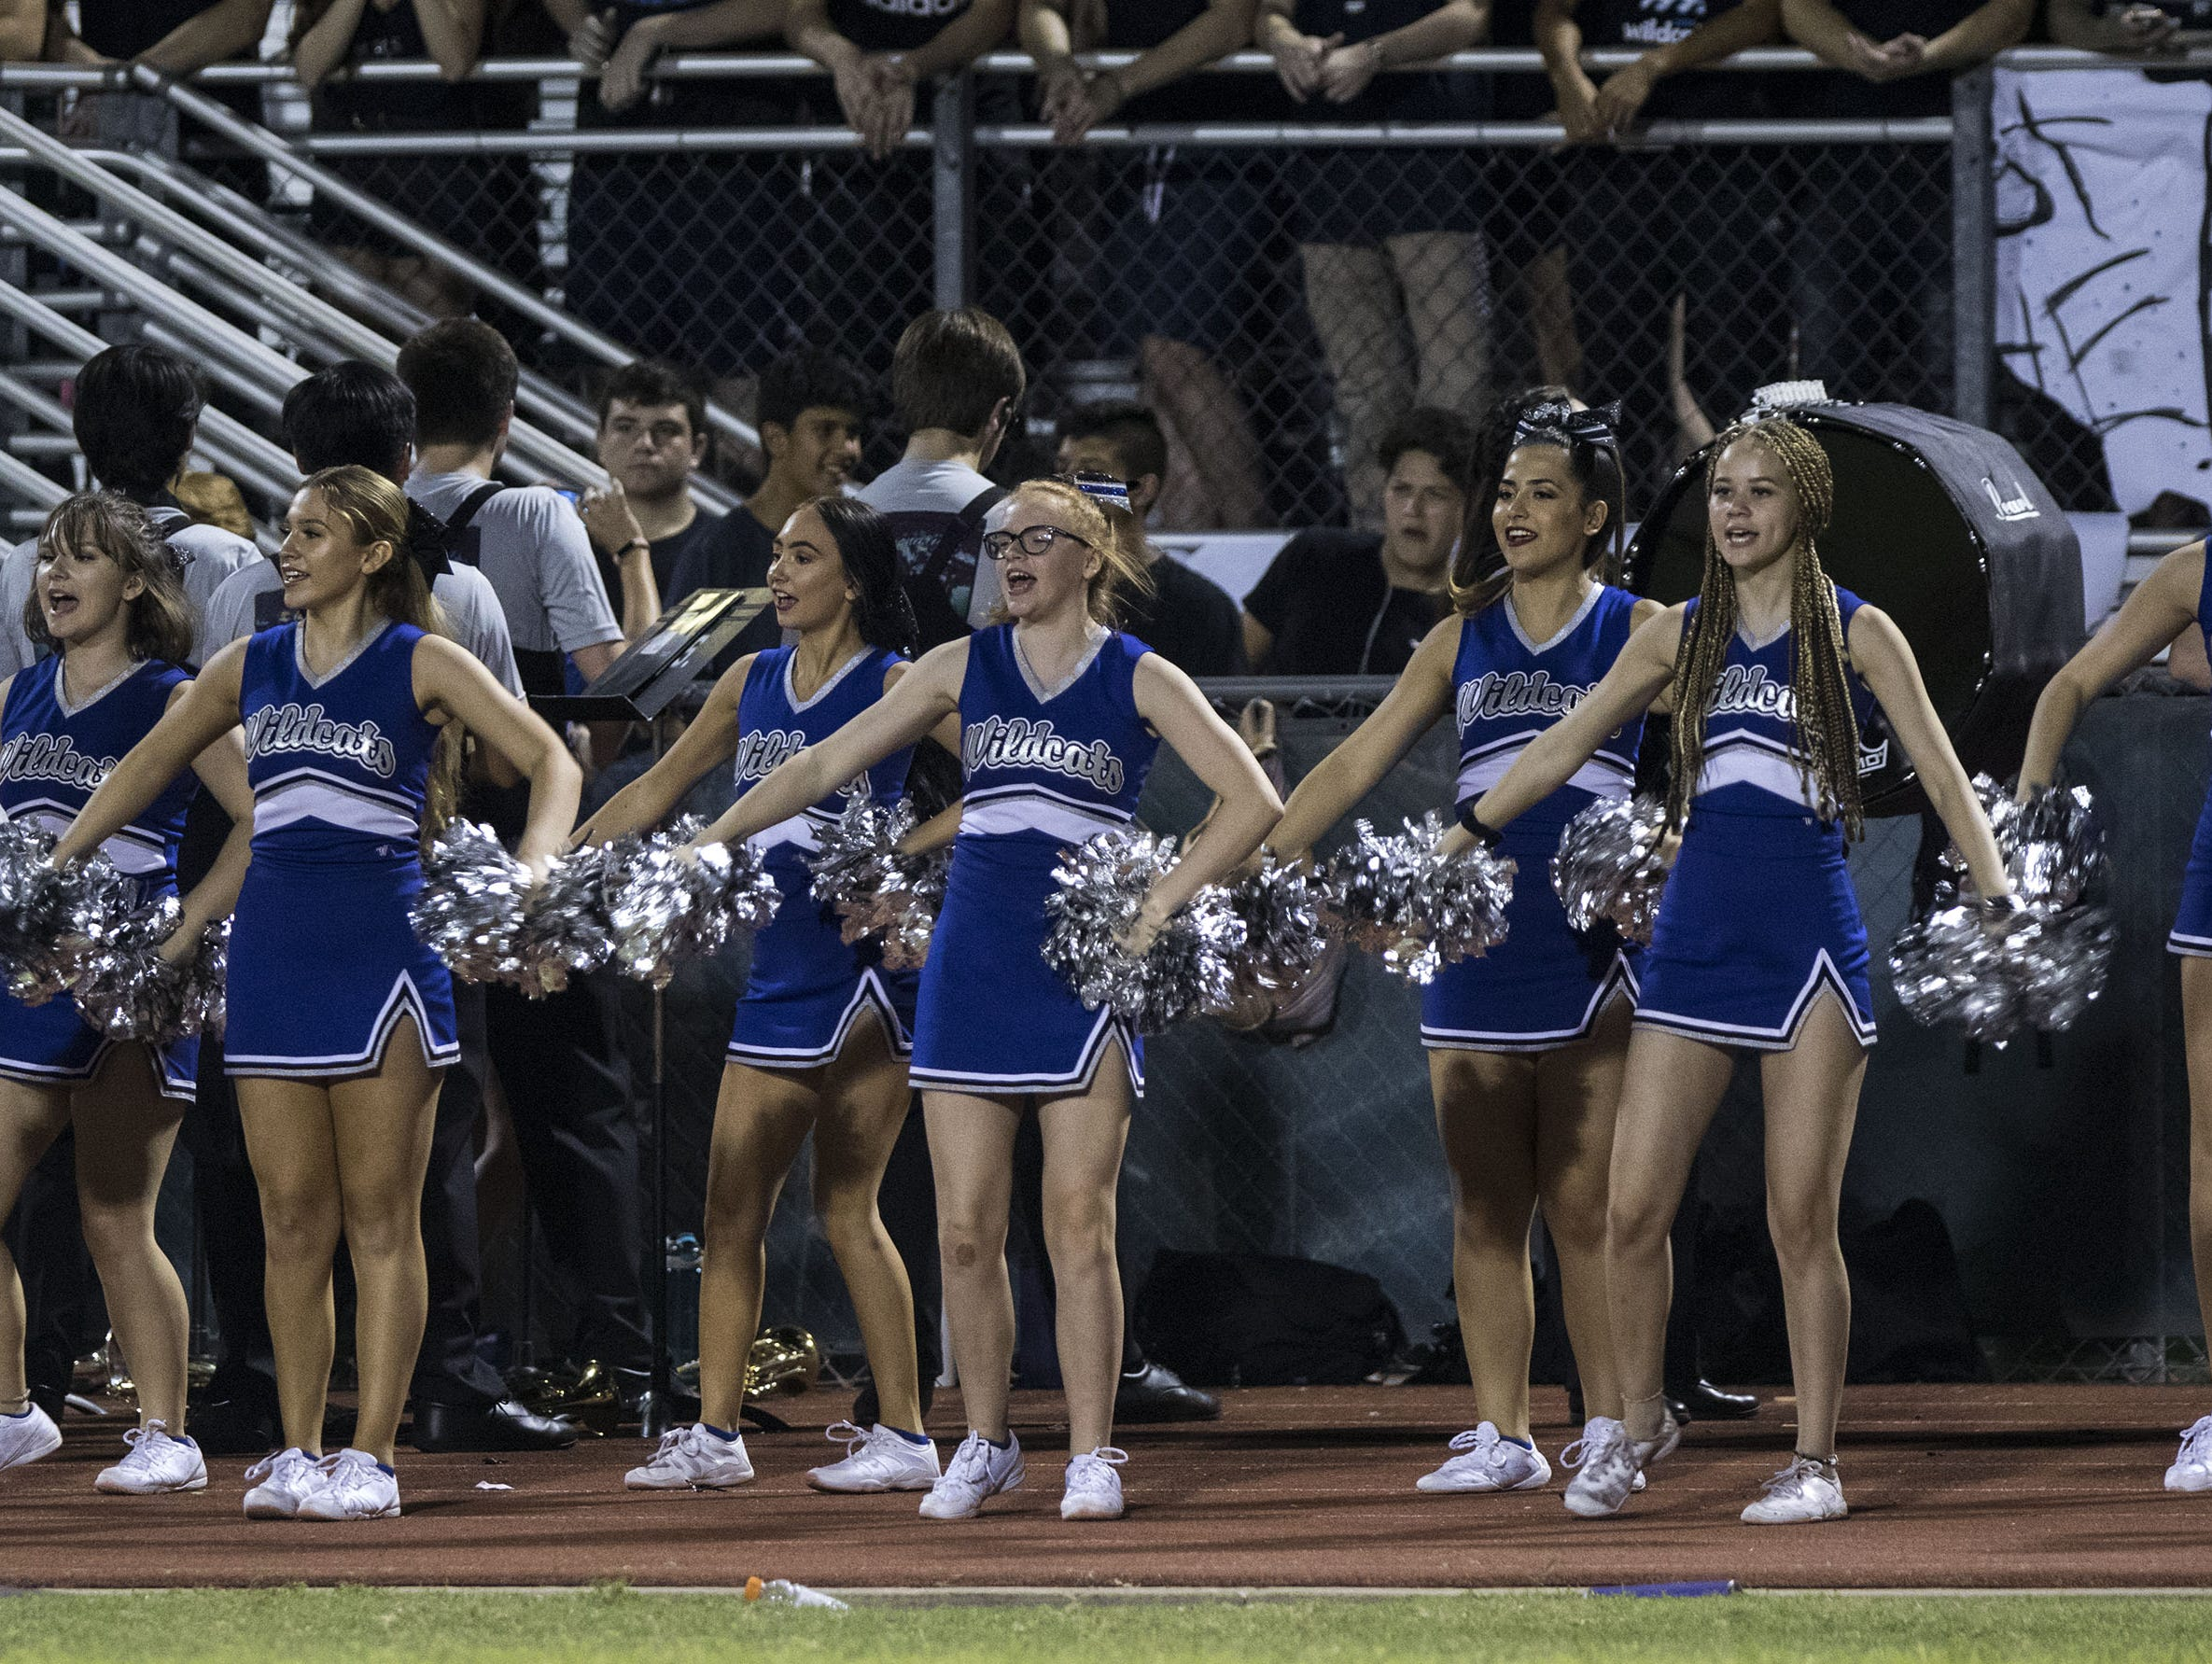 Mesquite cheerleaders do their thing during their game against Seton in Gilbert Friday, Sept. 21, 2018. #azhsfb